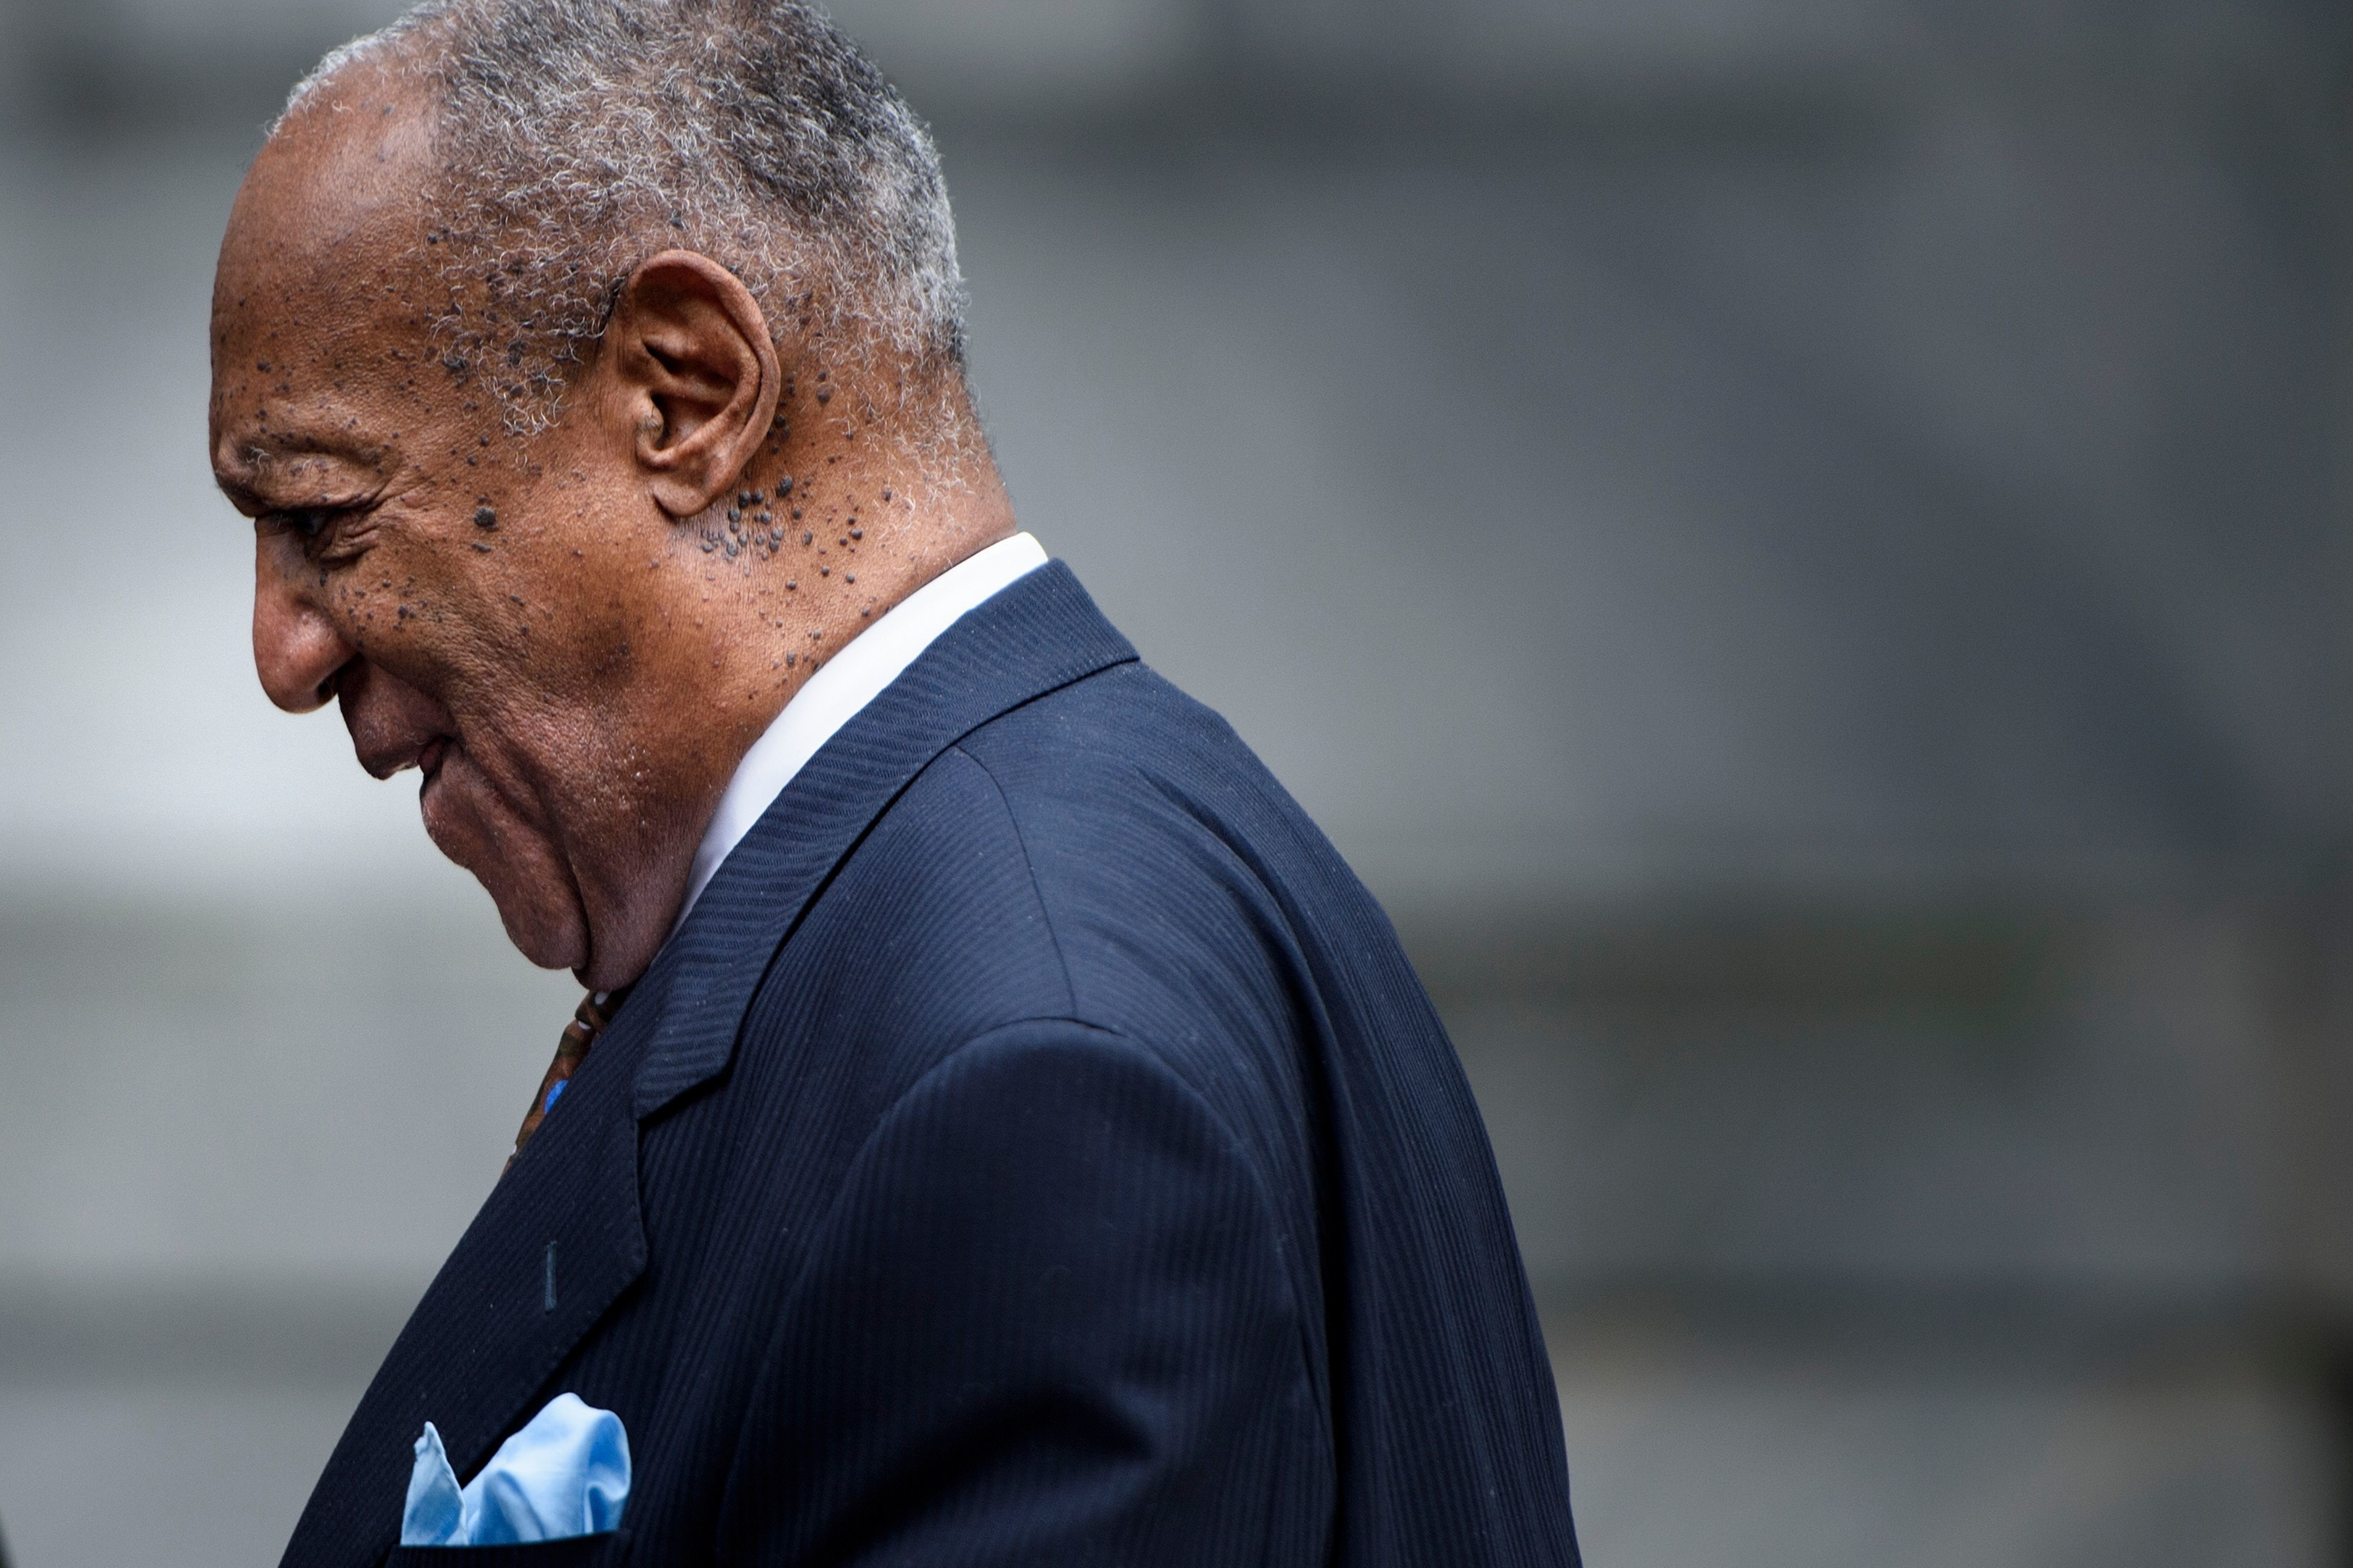 These Cosby Accusers Were Barred From Sharing Statements. They Read Them